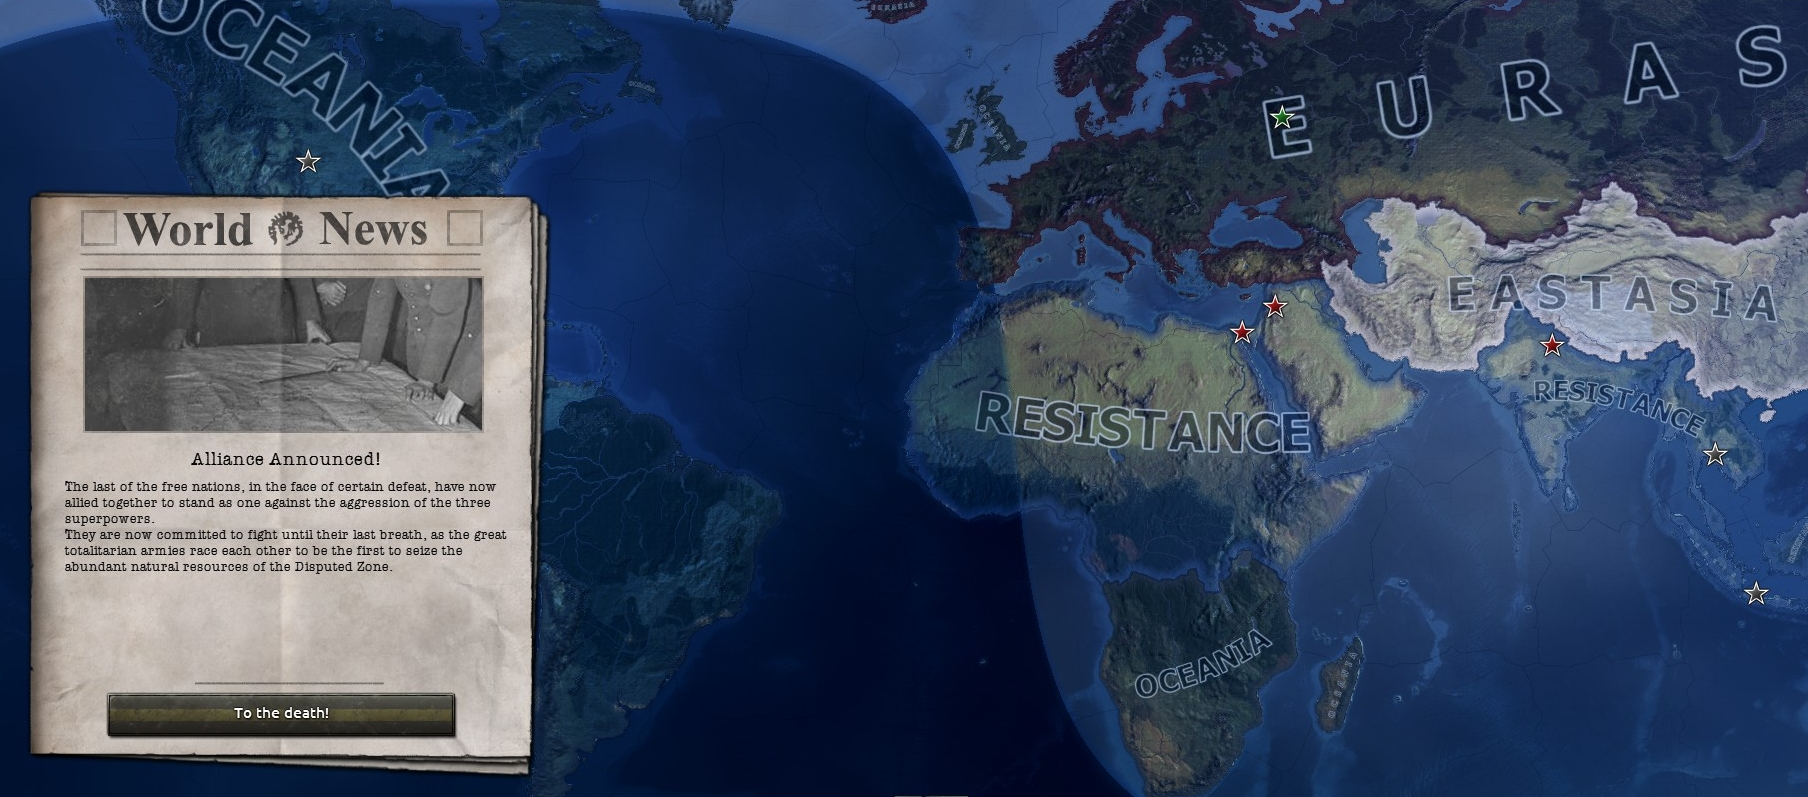 The Resistance Forms image - Hearts of Iron: 1984 mod for Hearts of